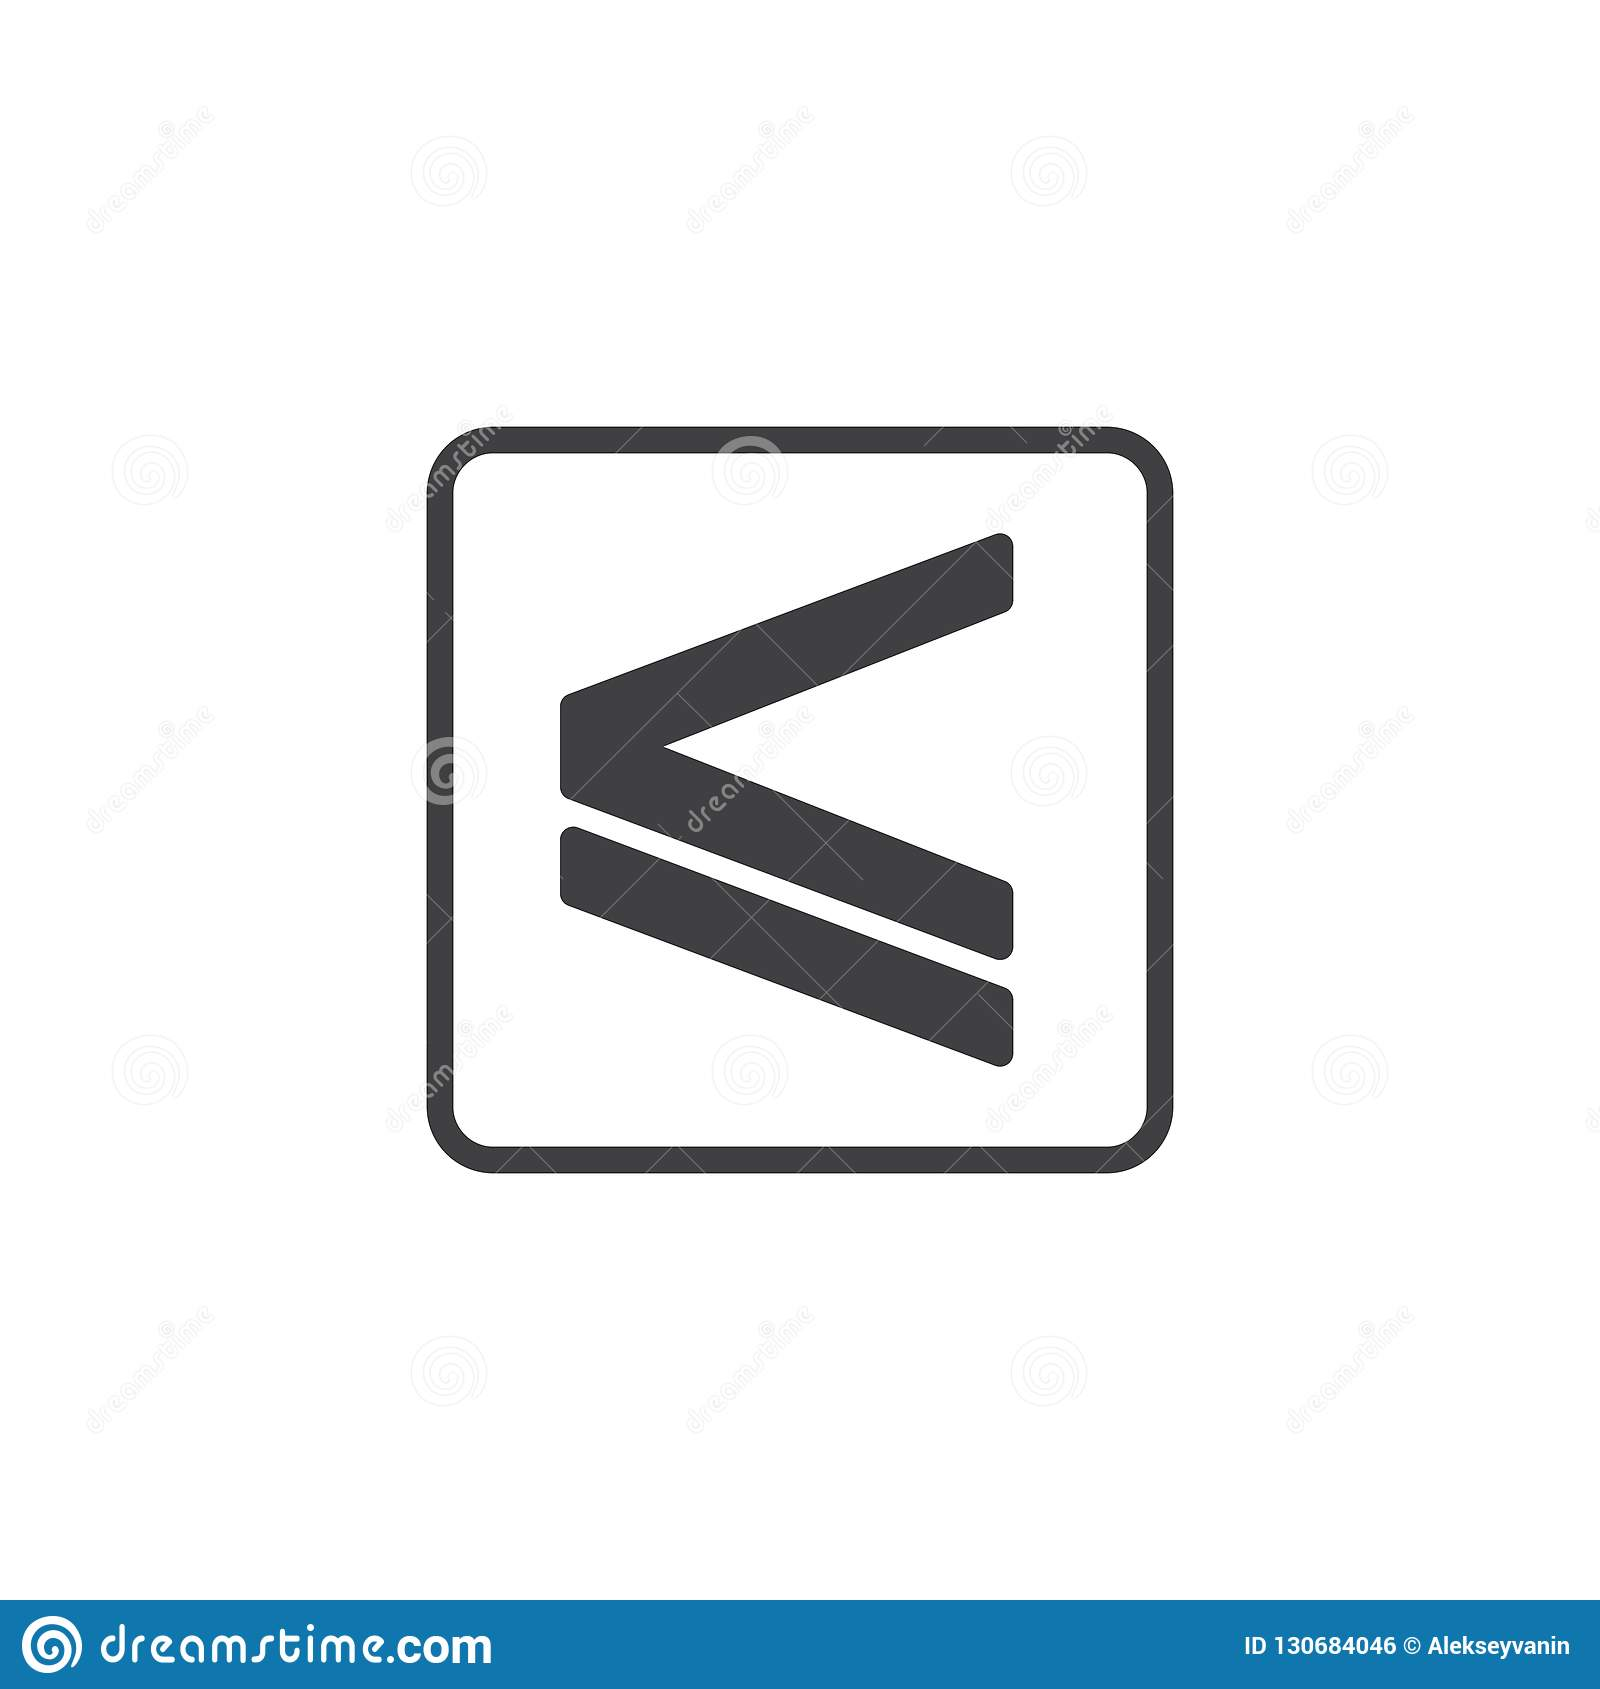 Is less than or equal to vector icon